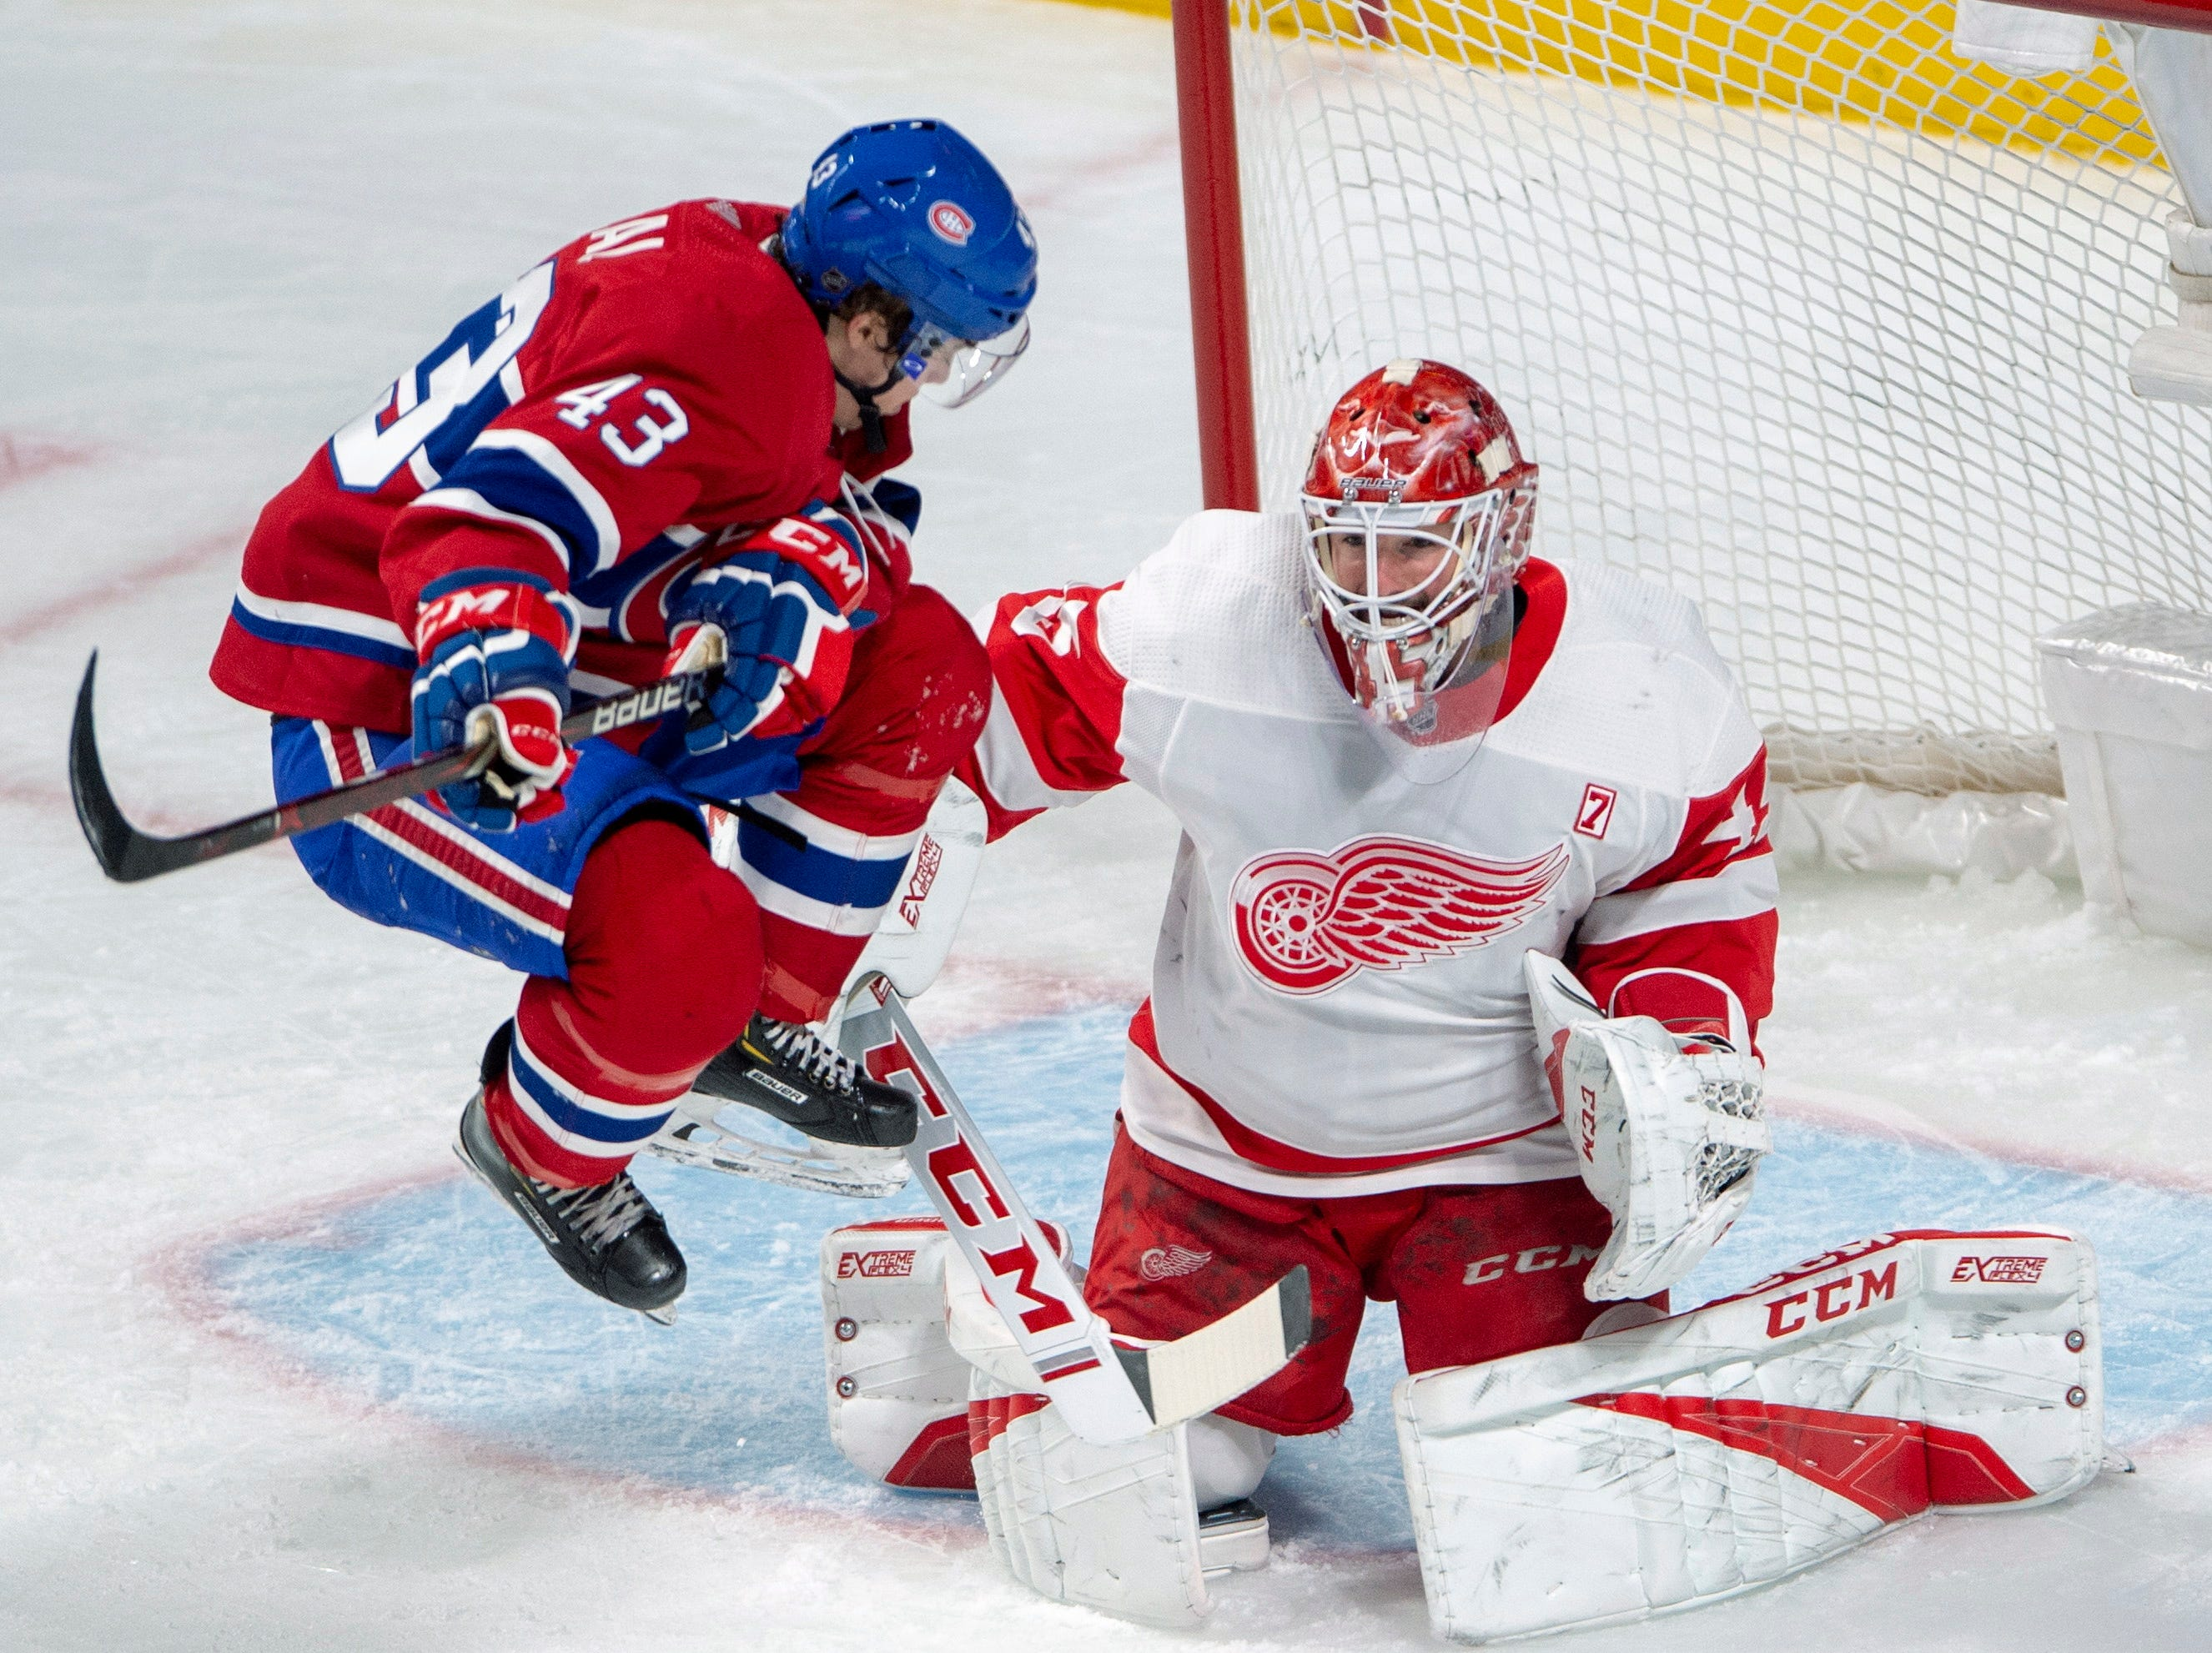 Montreal Canadiens centre Jordan Weal (43) jumps in front of Detroit Red Wings goaltender Jonathan Bernier (45) during the second period.